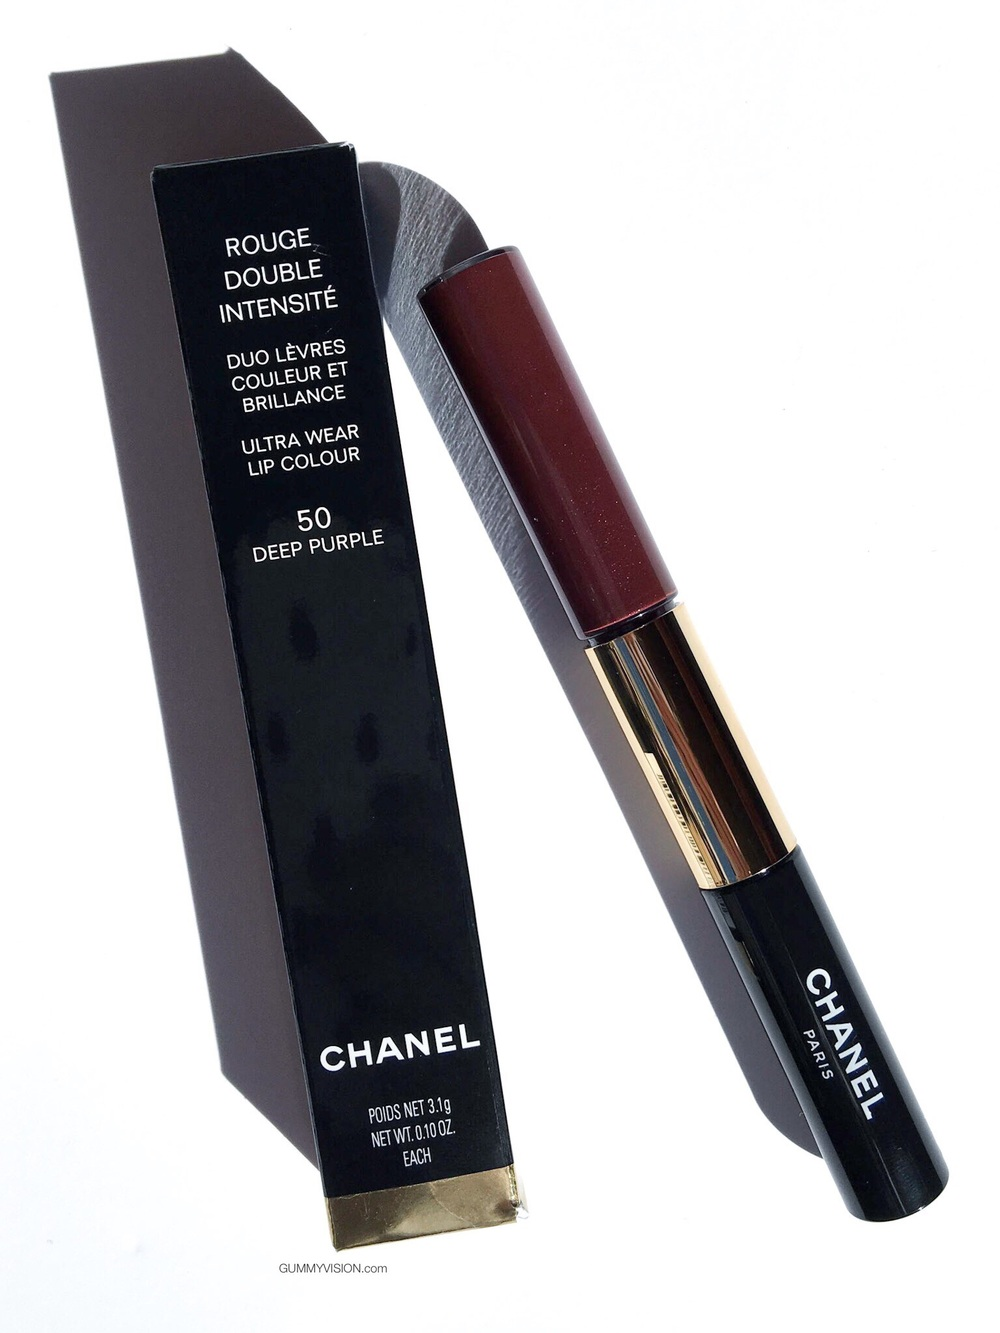 Chanel Rouge Double Intensite Ultra Wear Lip Colour In 50 Deep Purple - gummyvision.com